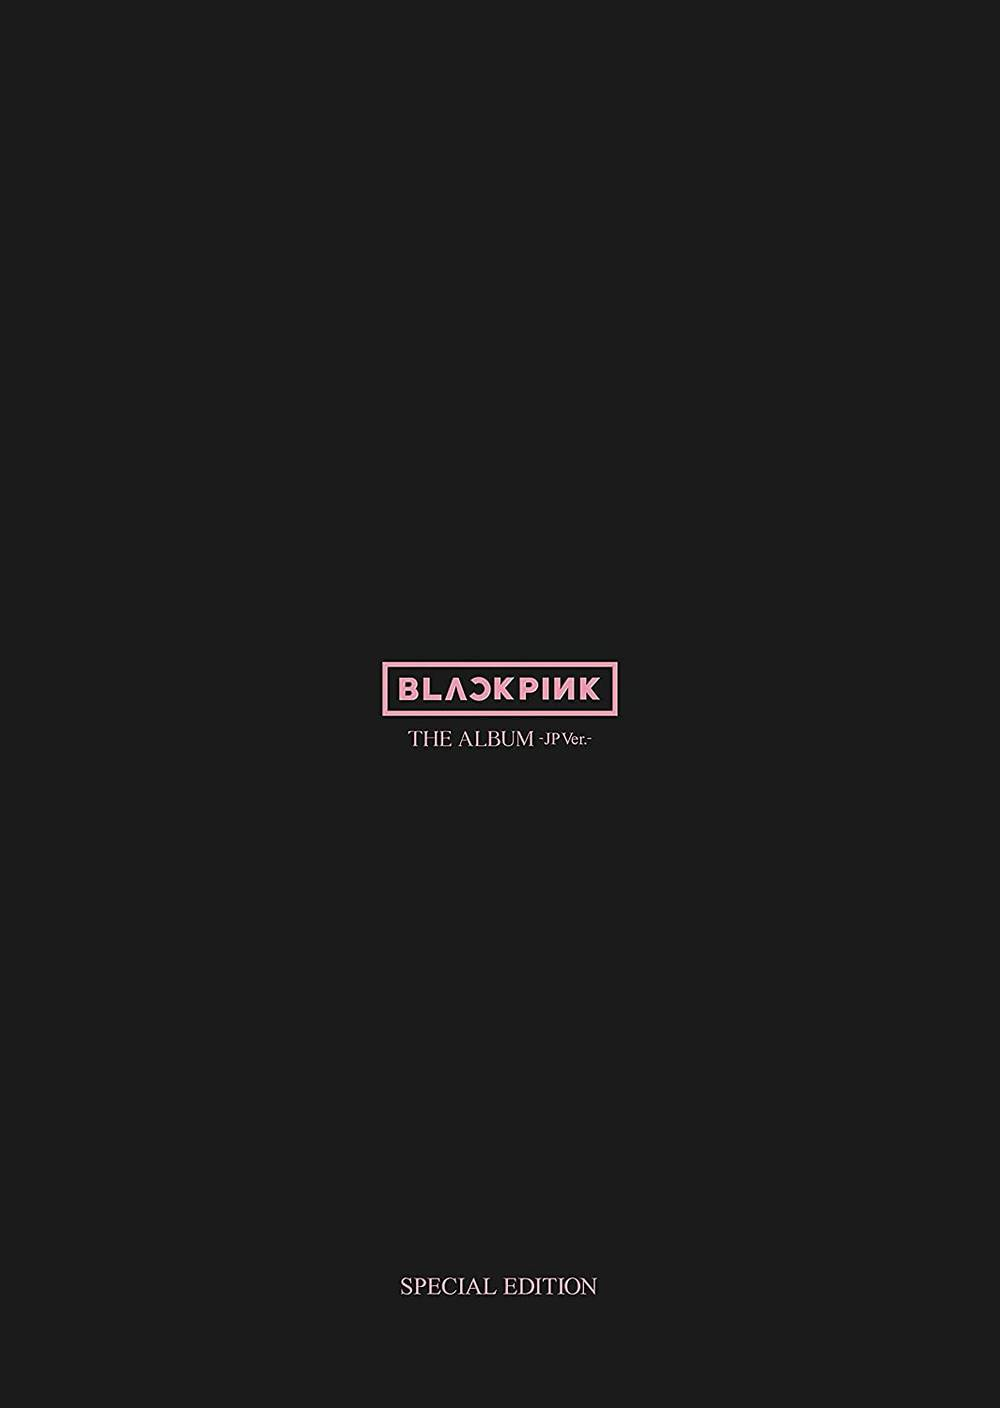 BlackPink - The Album: Japanese Version (Limited Edition) (incl. 2 x Blu-Ray + Booklet) [Import]